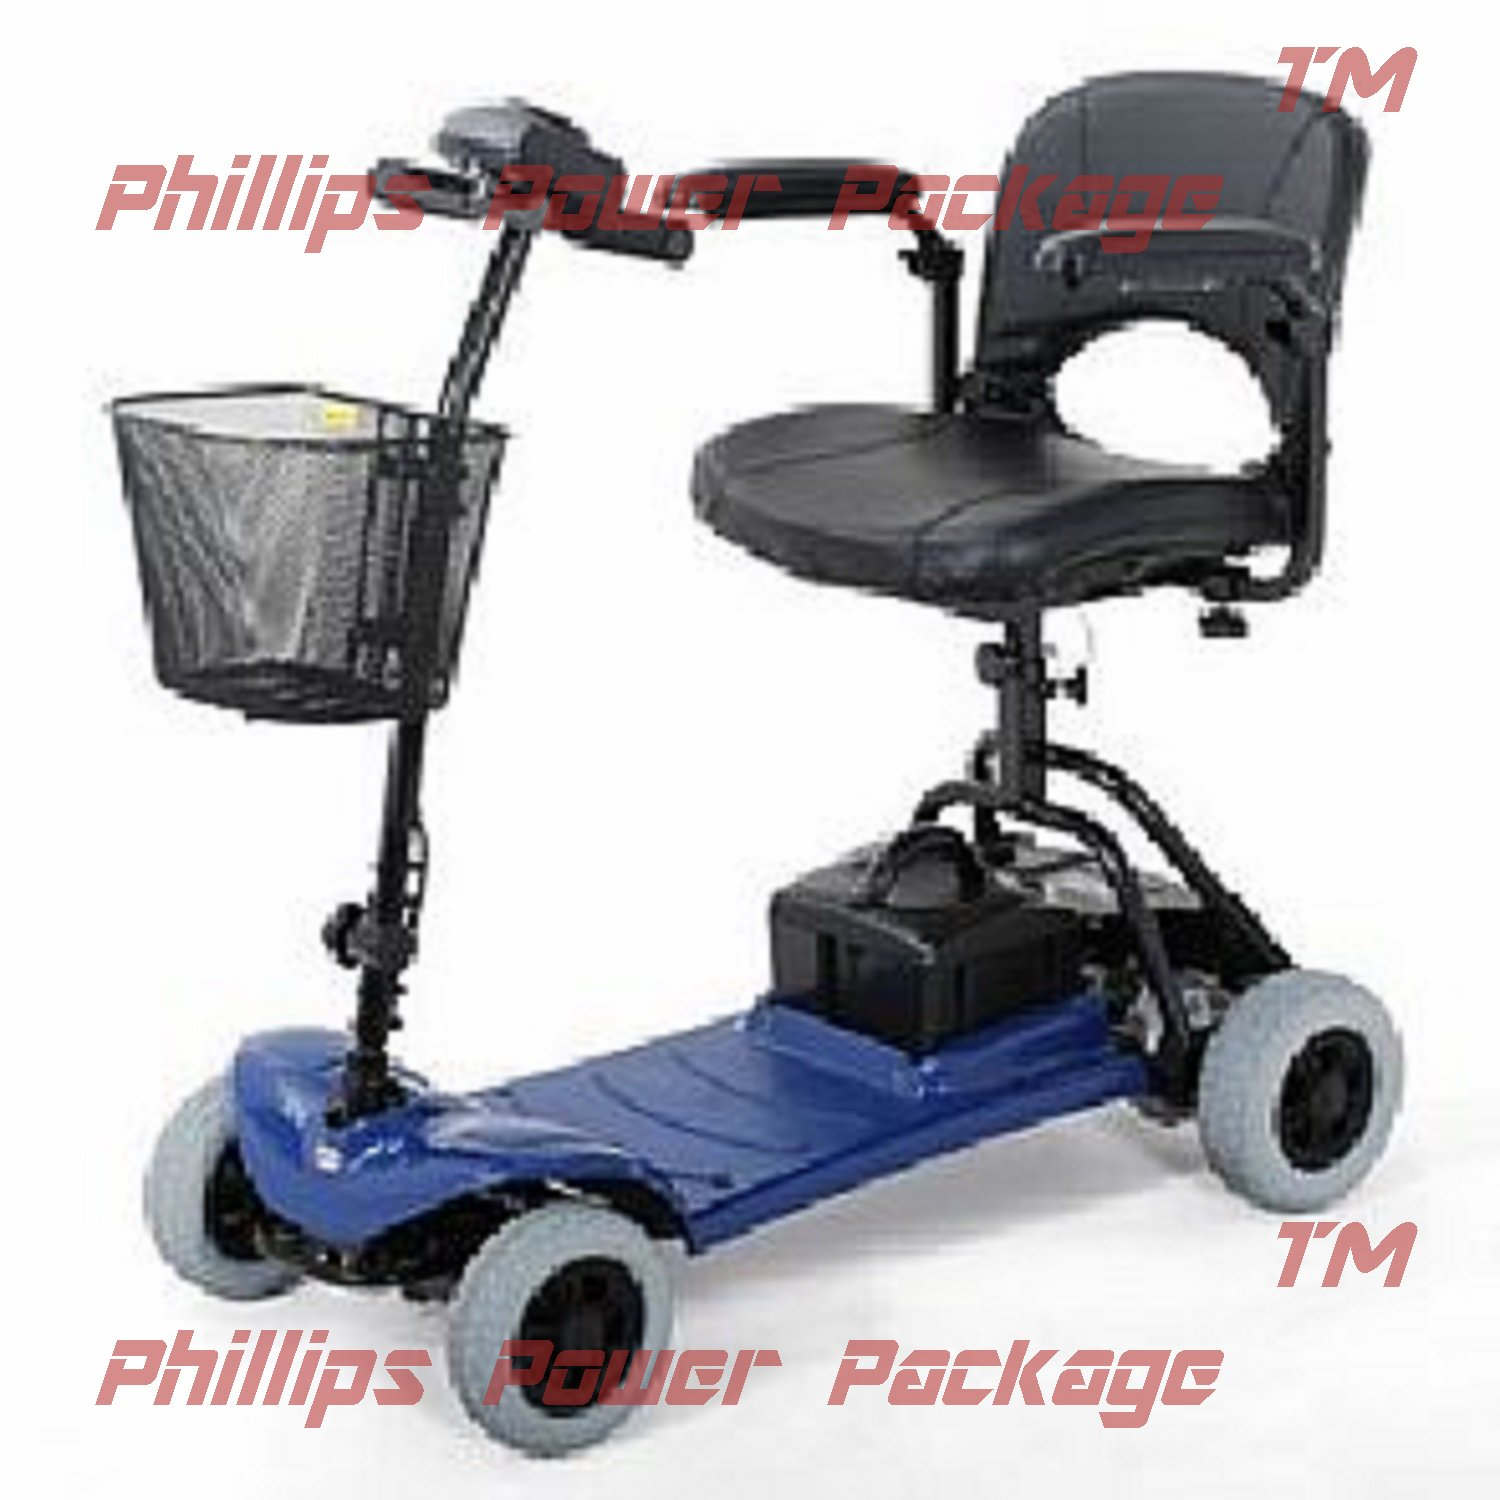 Merits Health Products - Roadster - 4-Wheel Scooter - 15''W x 15''D - Blue - PHILLIPS POWER PACKAGE TM - TO $500 VALUE